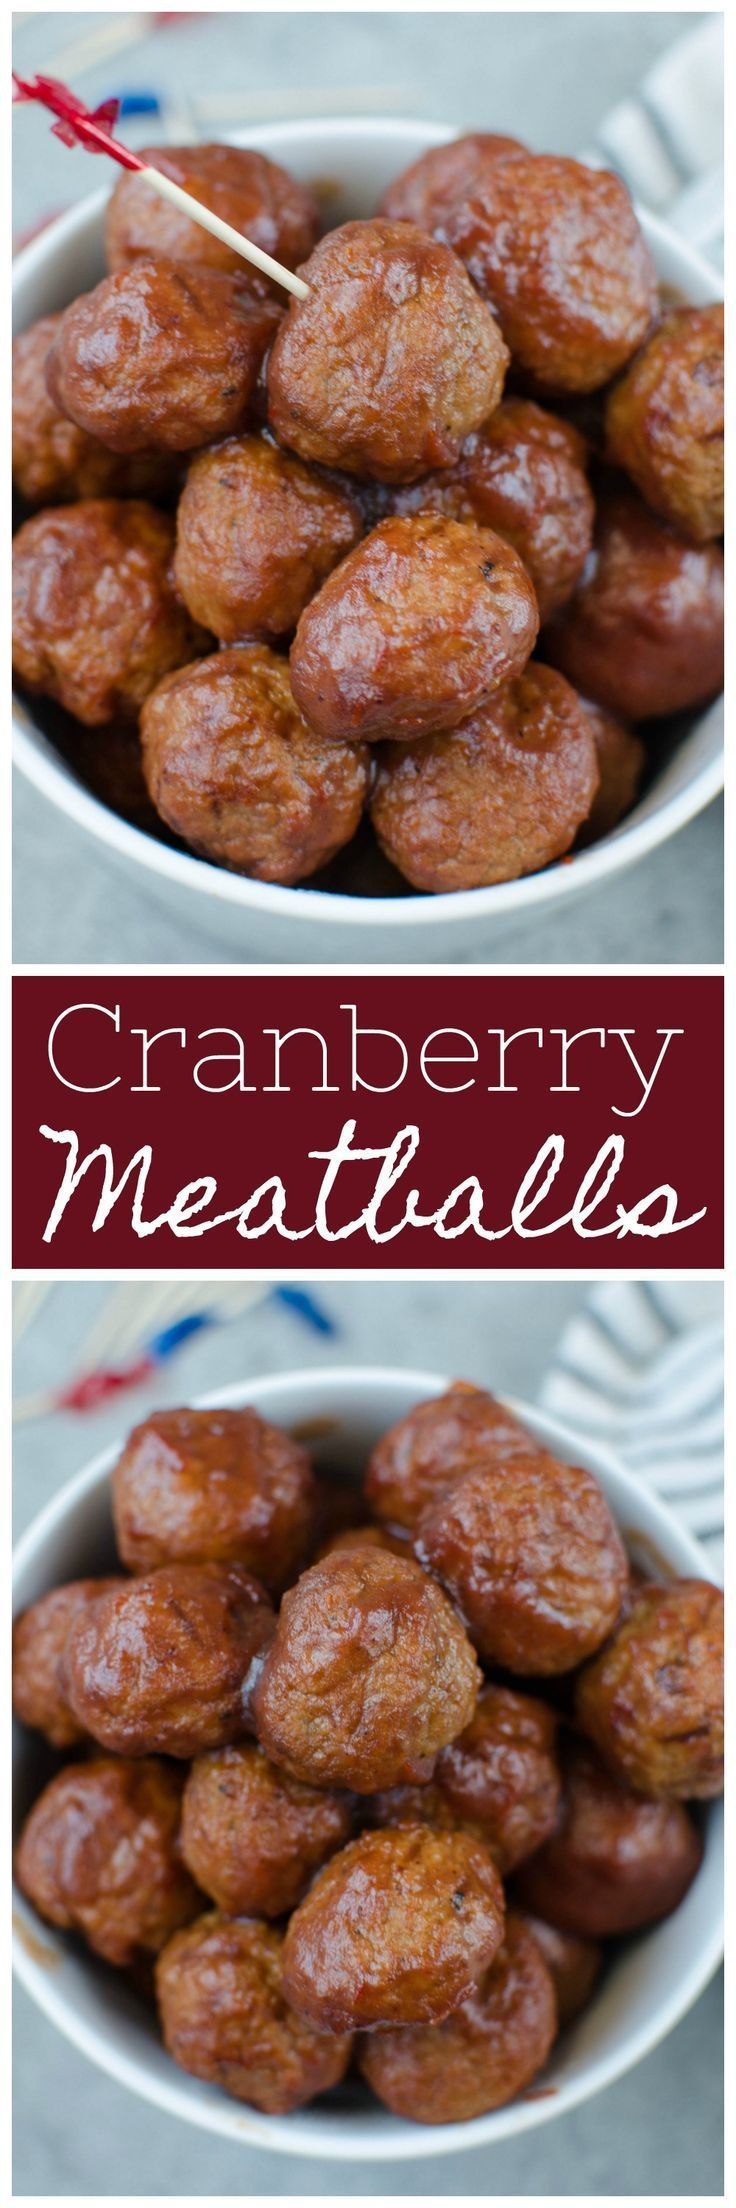 Slow Cooker Cranberry Meatballs #meatballswithgrapejelly